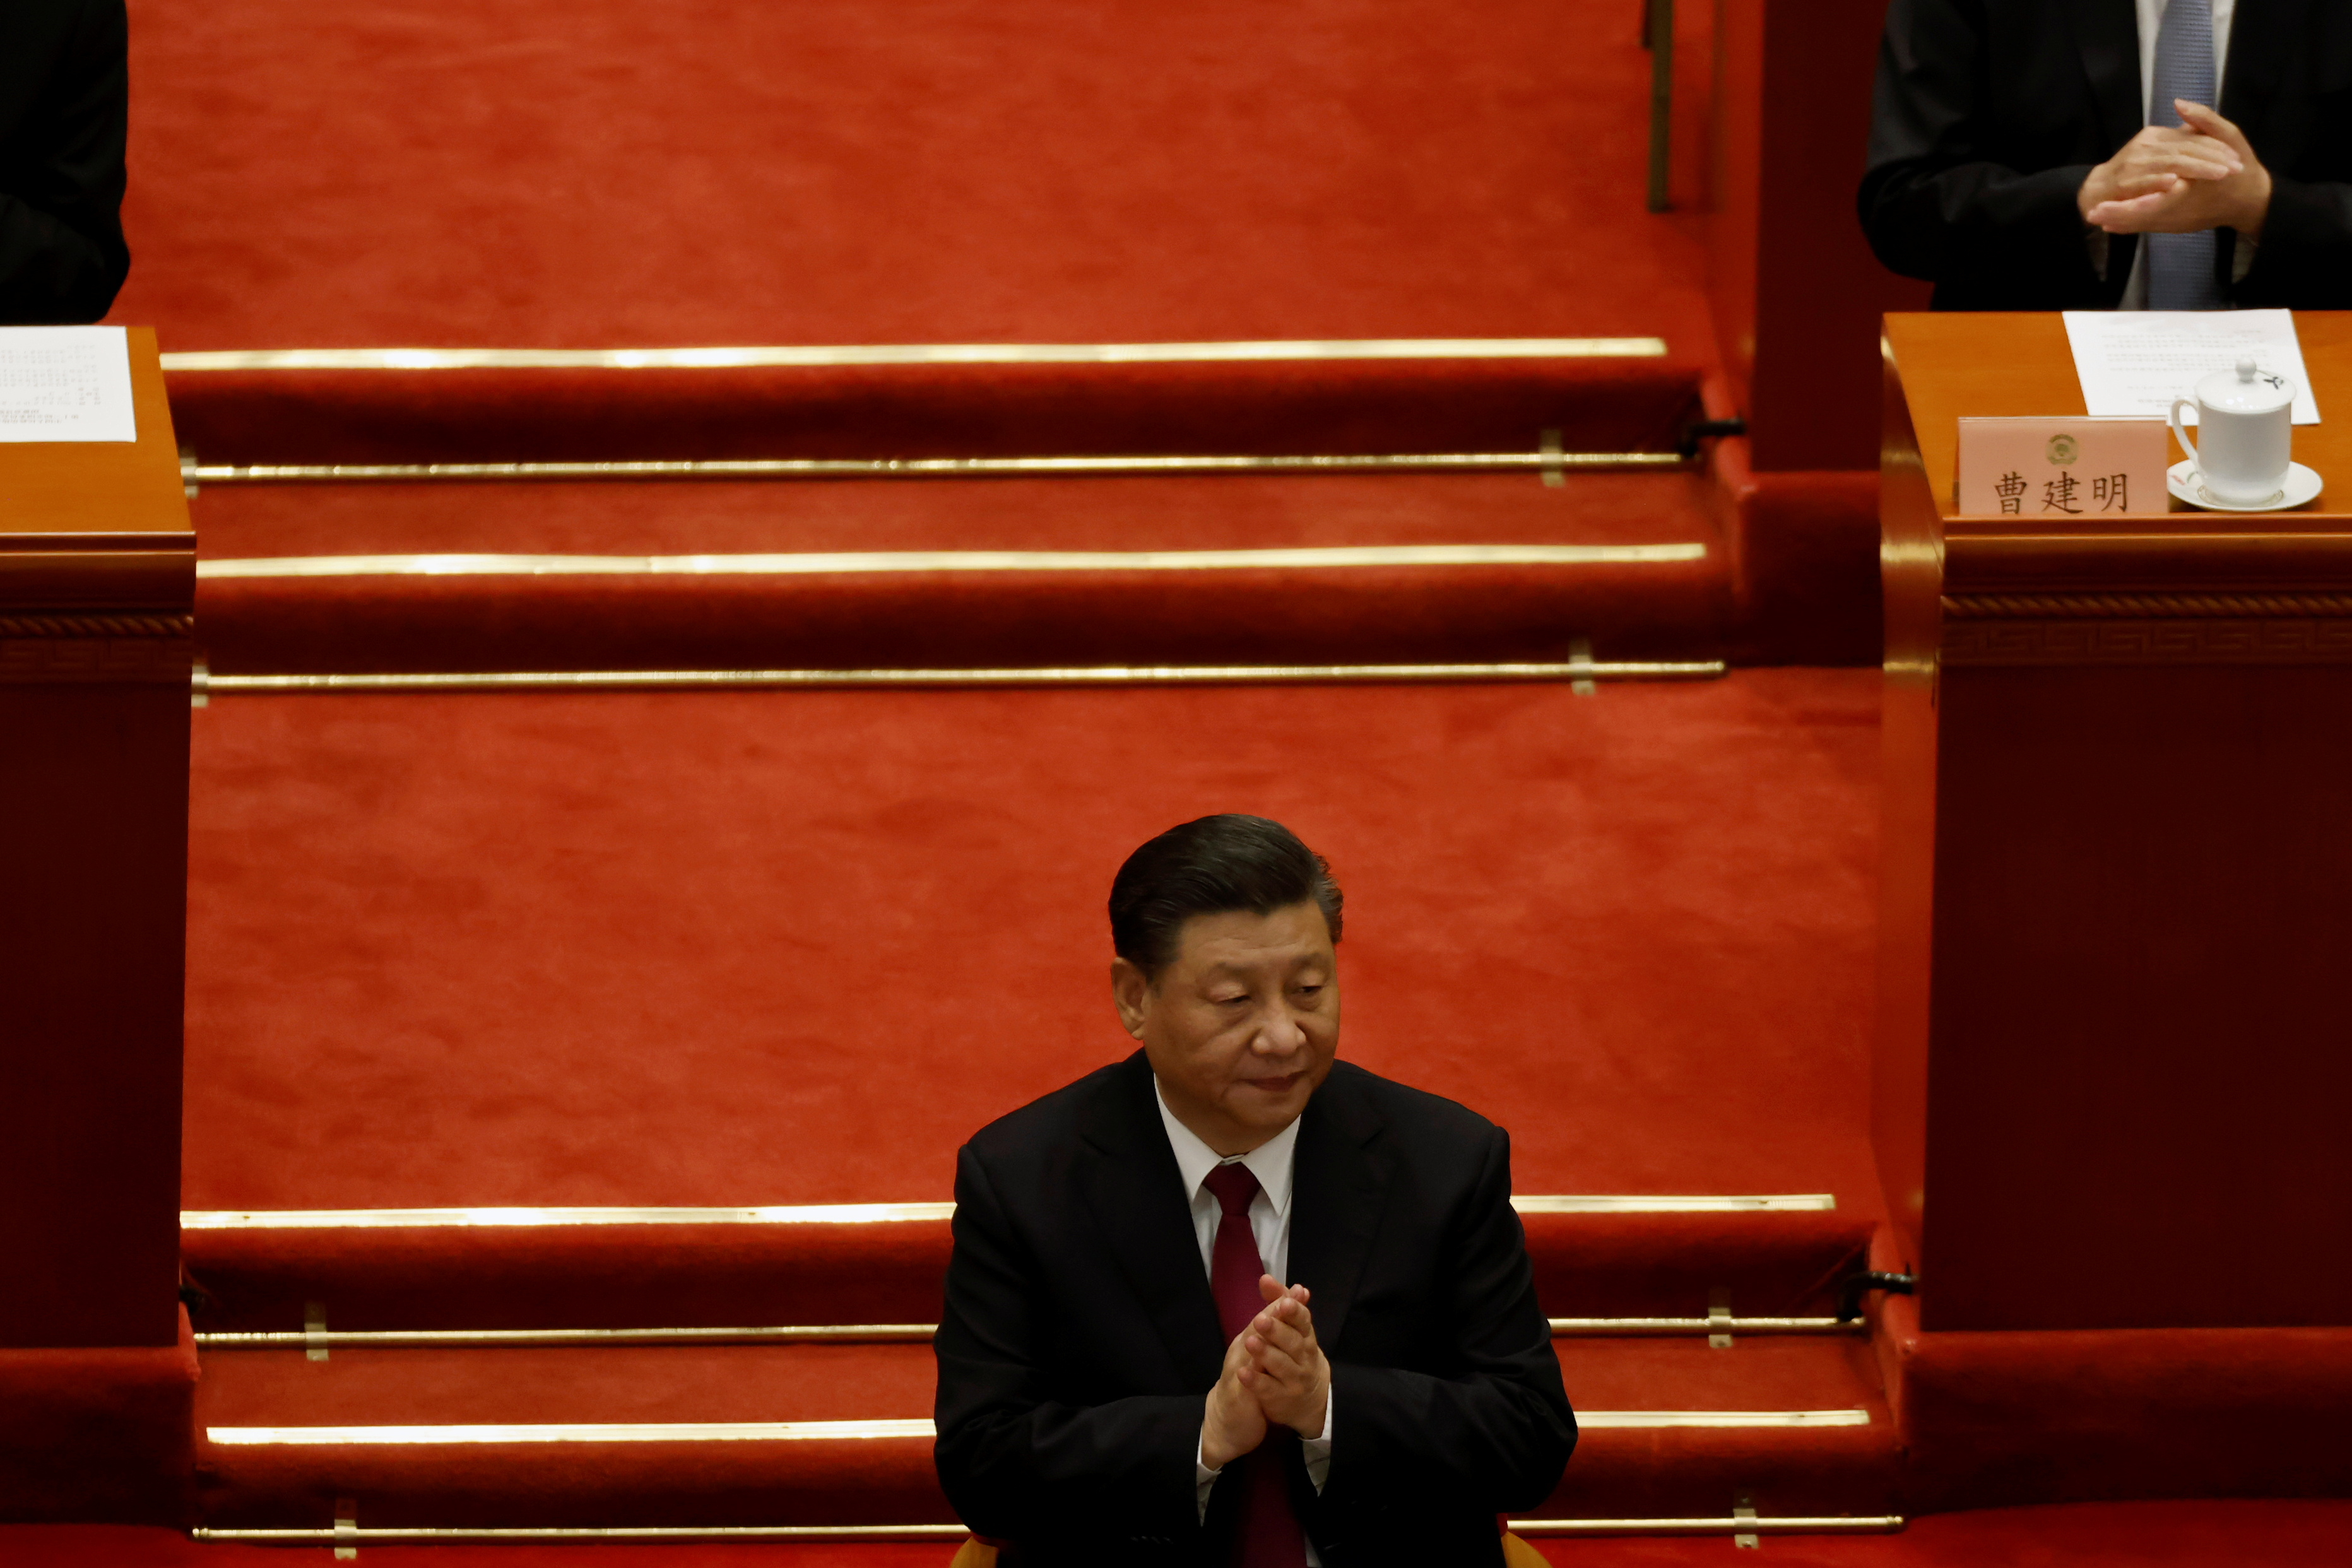 Chinese President Xi Jinping applauds at the closing session of the Chinese People's Political Consultative Conference (CPPCC) at the Great Hall of the People in Beijing, China March 10, 2021. REUTERS/Carlos Garcia Rawlins